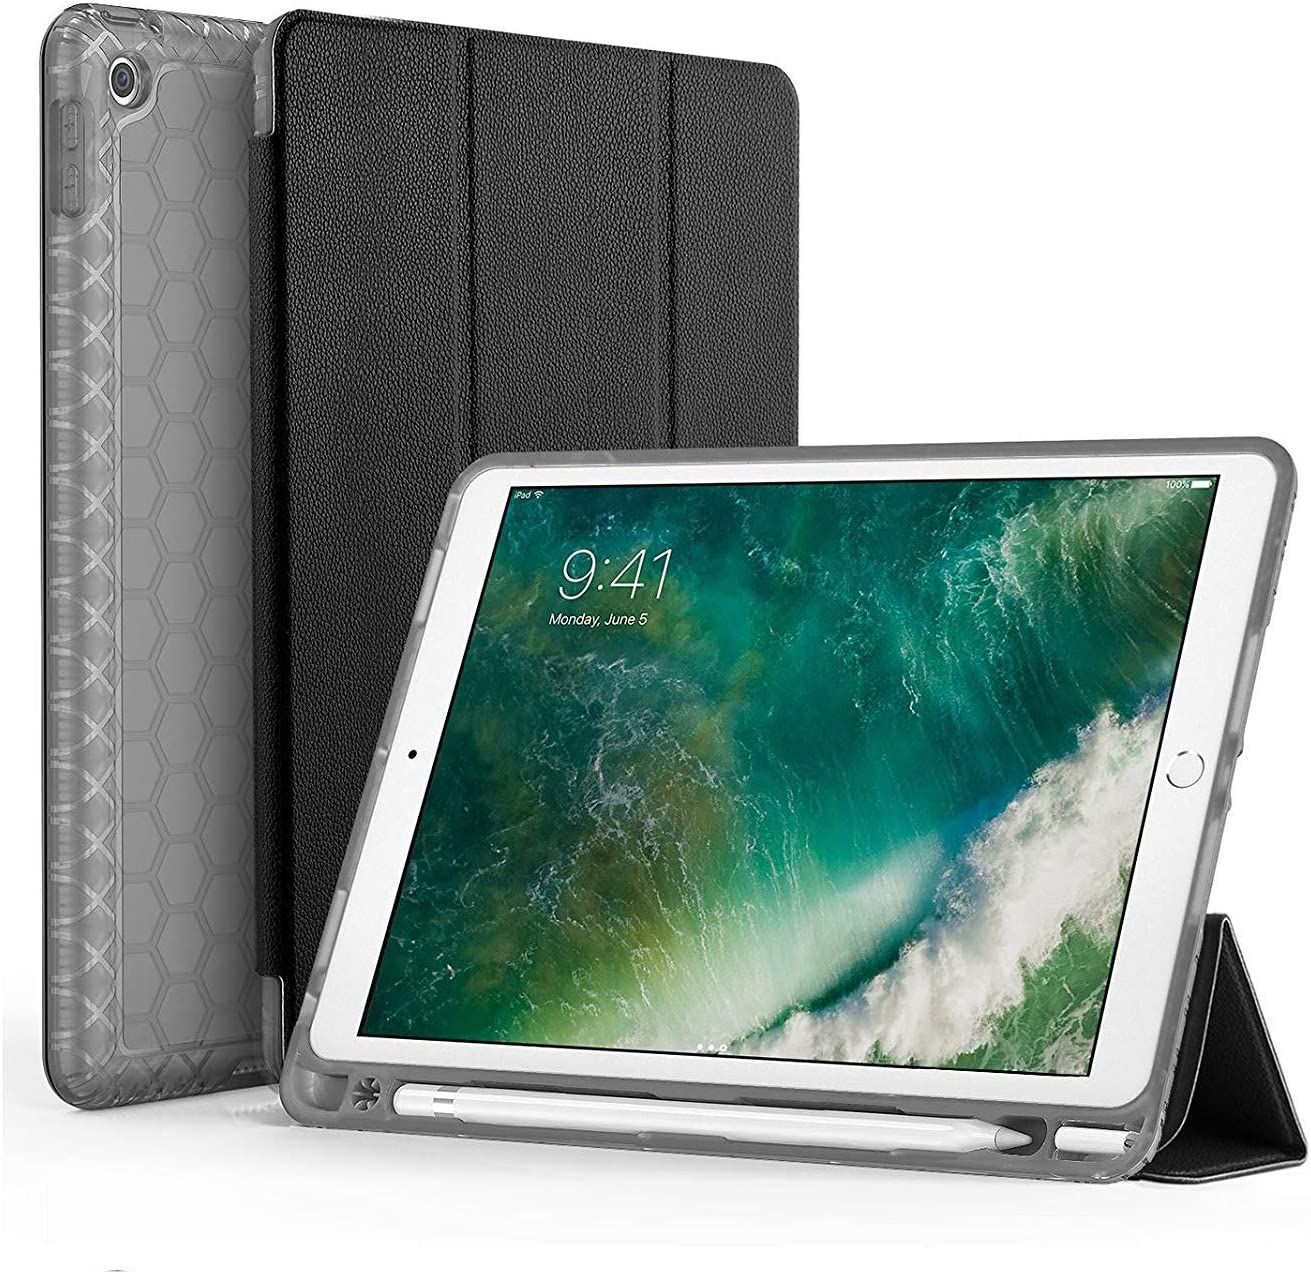 SWEES Compatible for iPad 9.7 2018/2017 Case with Pencil Holder, Shockproof Durable Smart Cover Leather Case with Built-in Apple Pencil Holder Compatible for iPad 9.7 inch 6th/5th Generation, Black